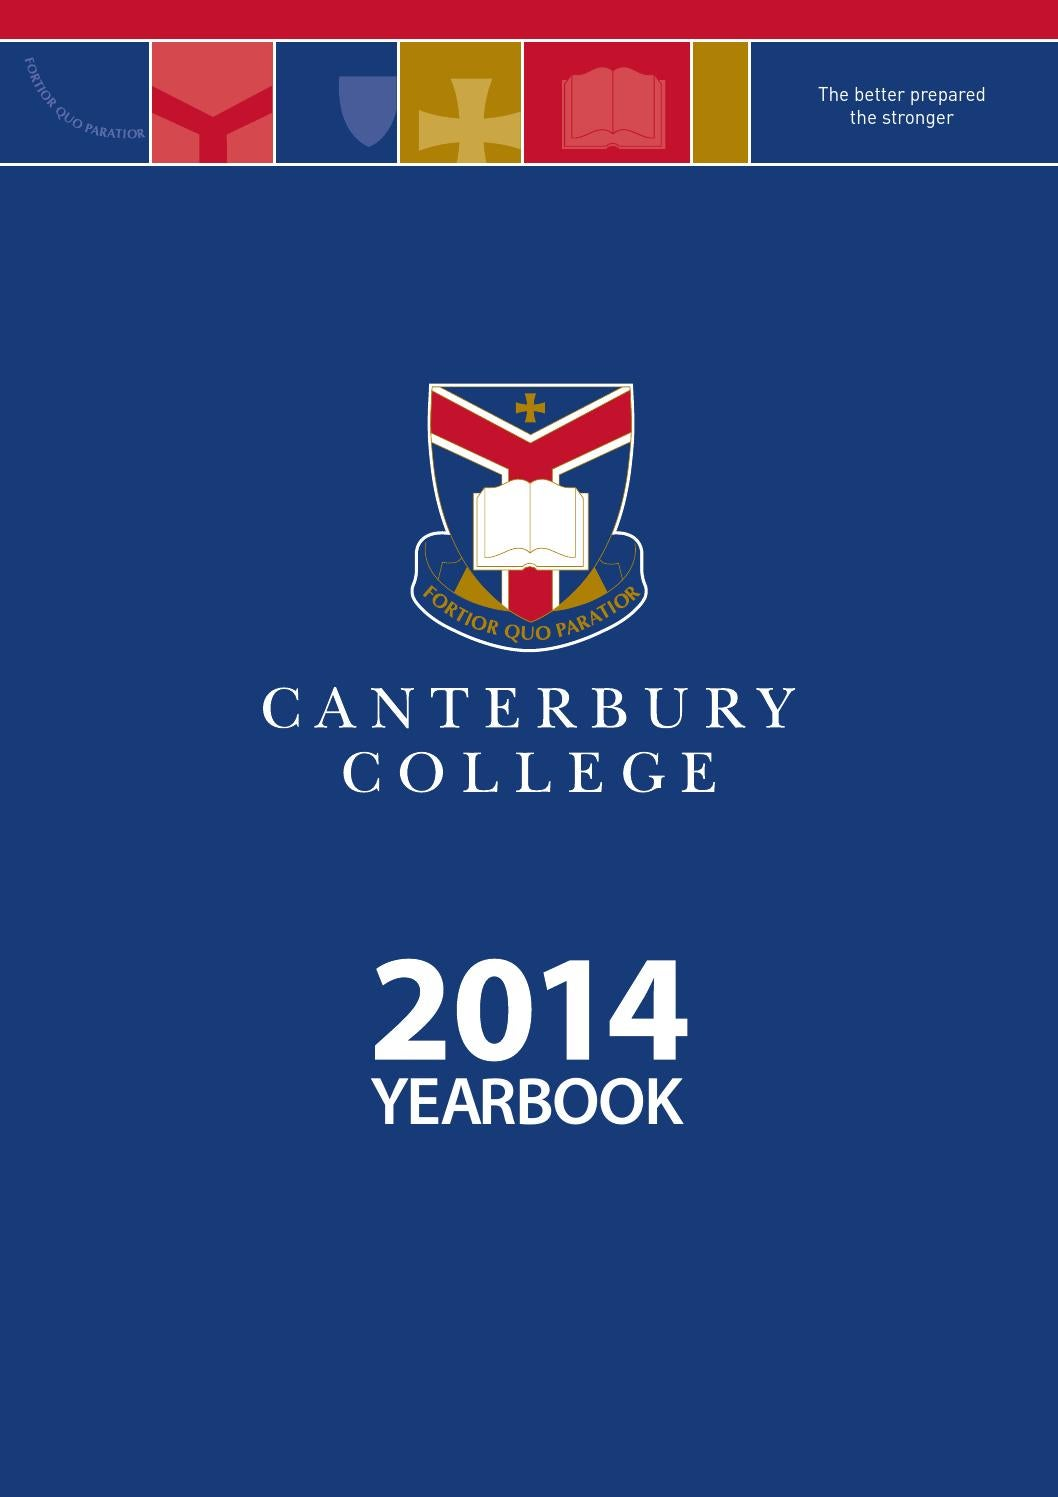 canterbury college yearbook 2014 by canterbury college